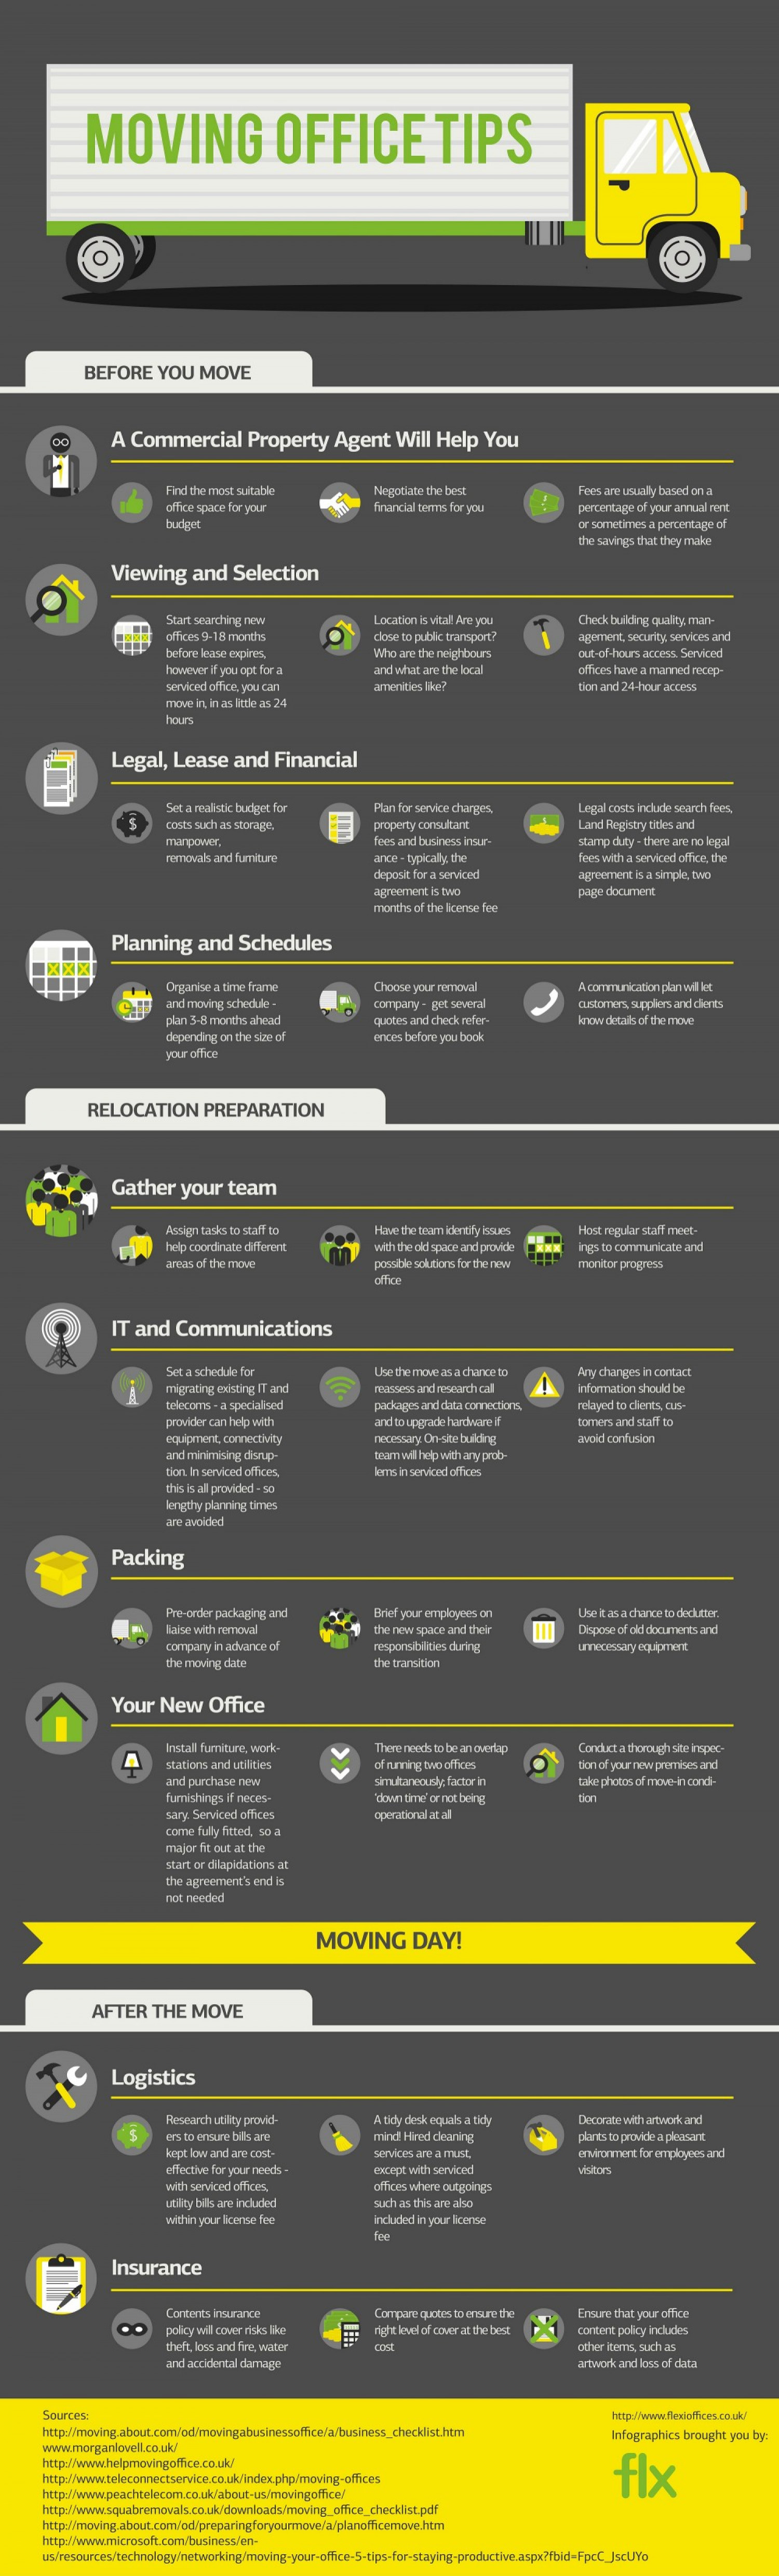 Moving Office Tips Infographic